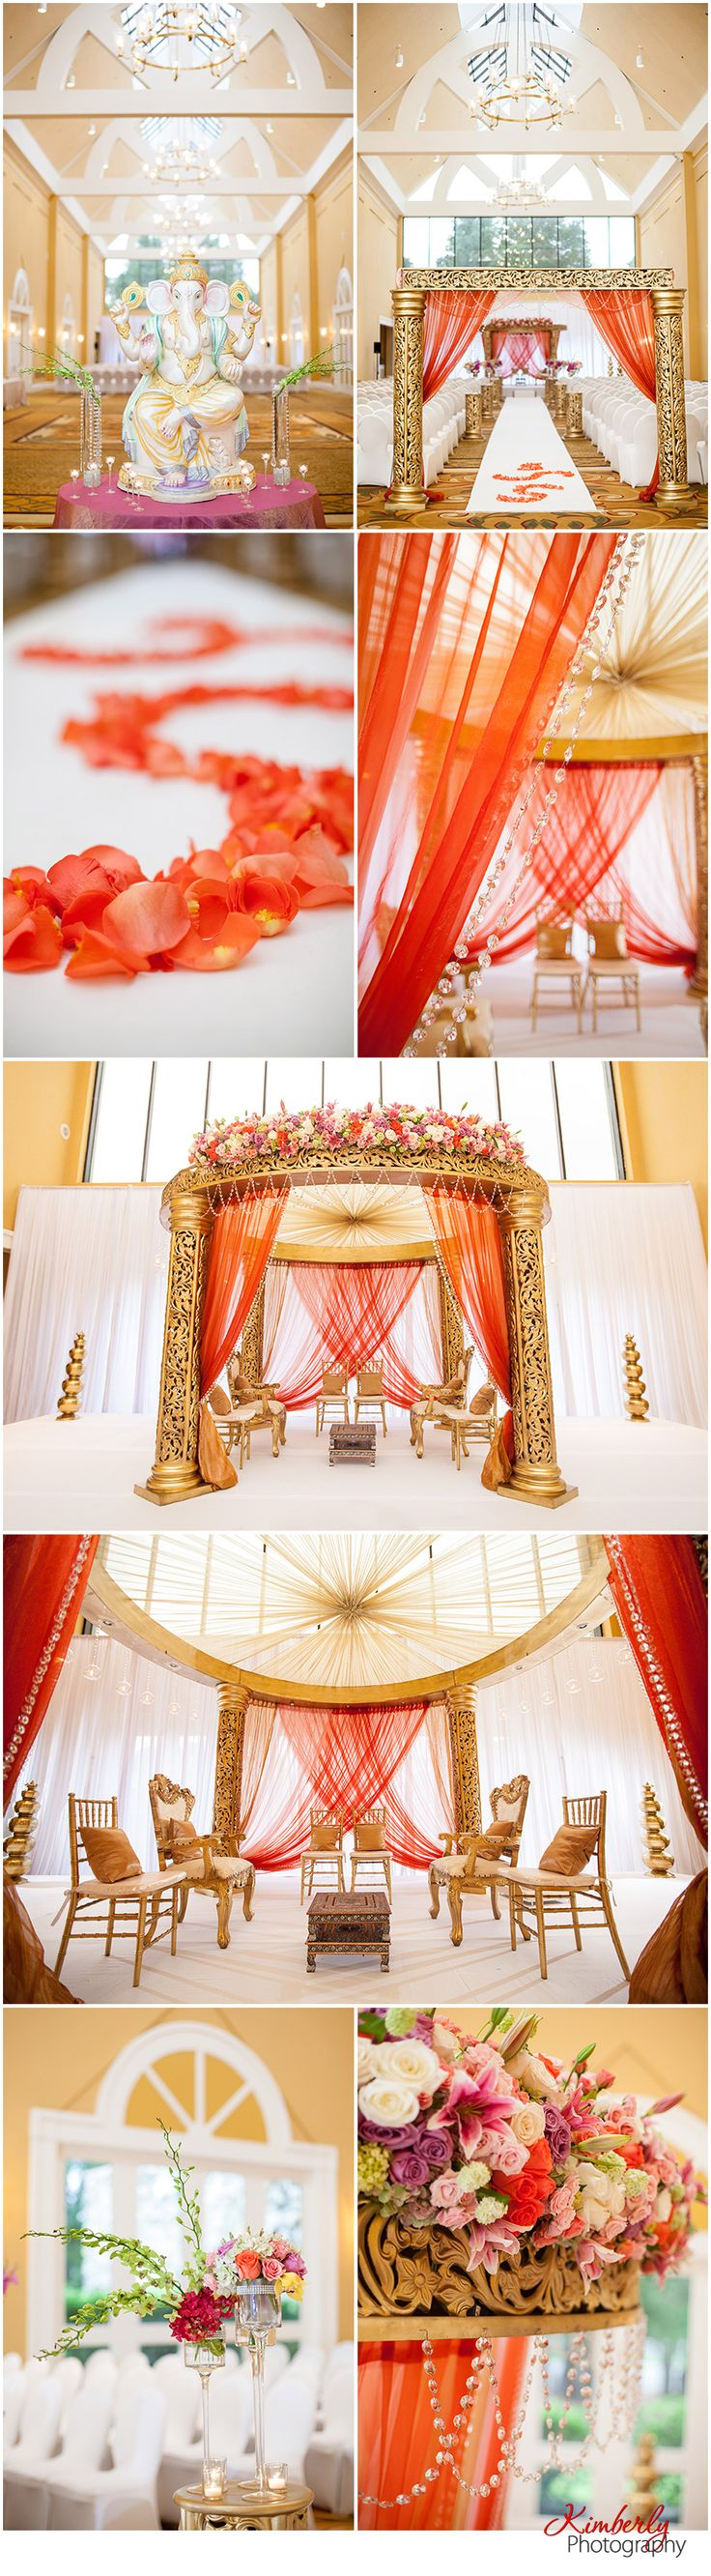 The 25 best wedding mandap ideas on pinterest outdoor indian get inspired with this romantic mandap decor florida indian wedding decor by suhaag gardens and junglespirit Choice Image